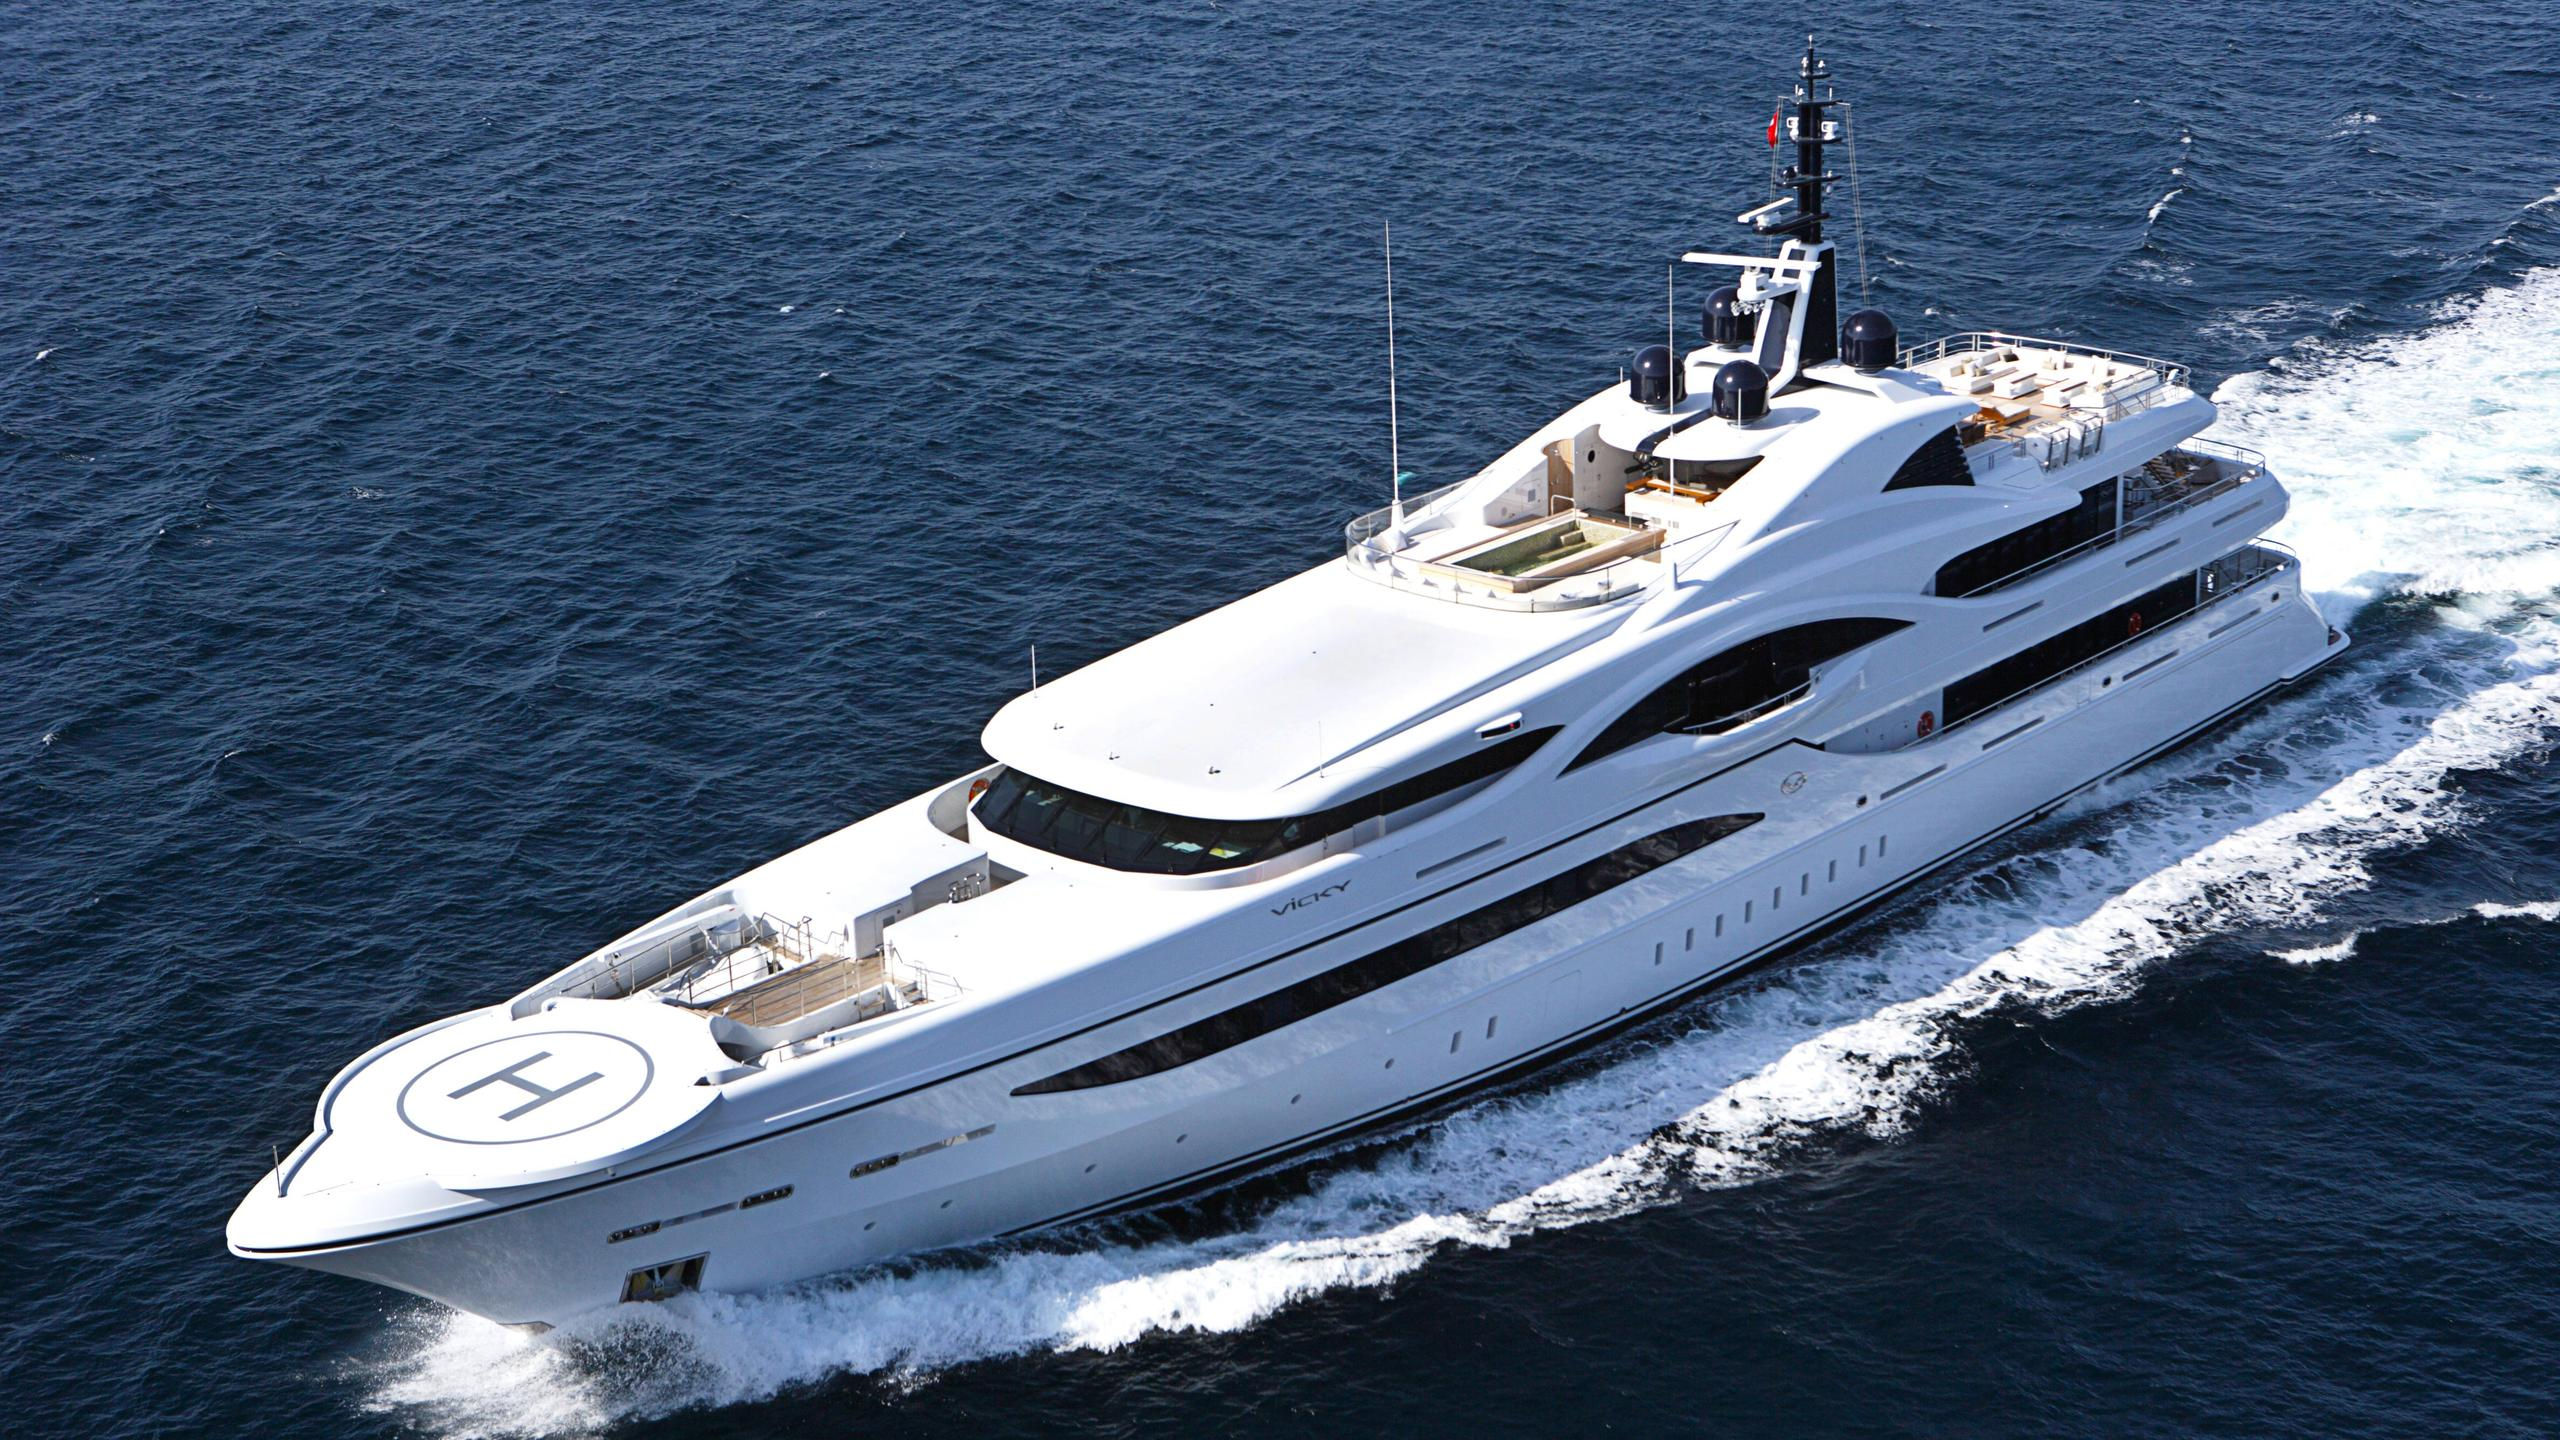 Vicky-motor-yacht-turquoise-2012-73m-aerial